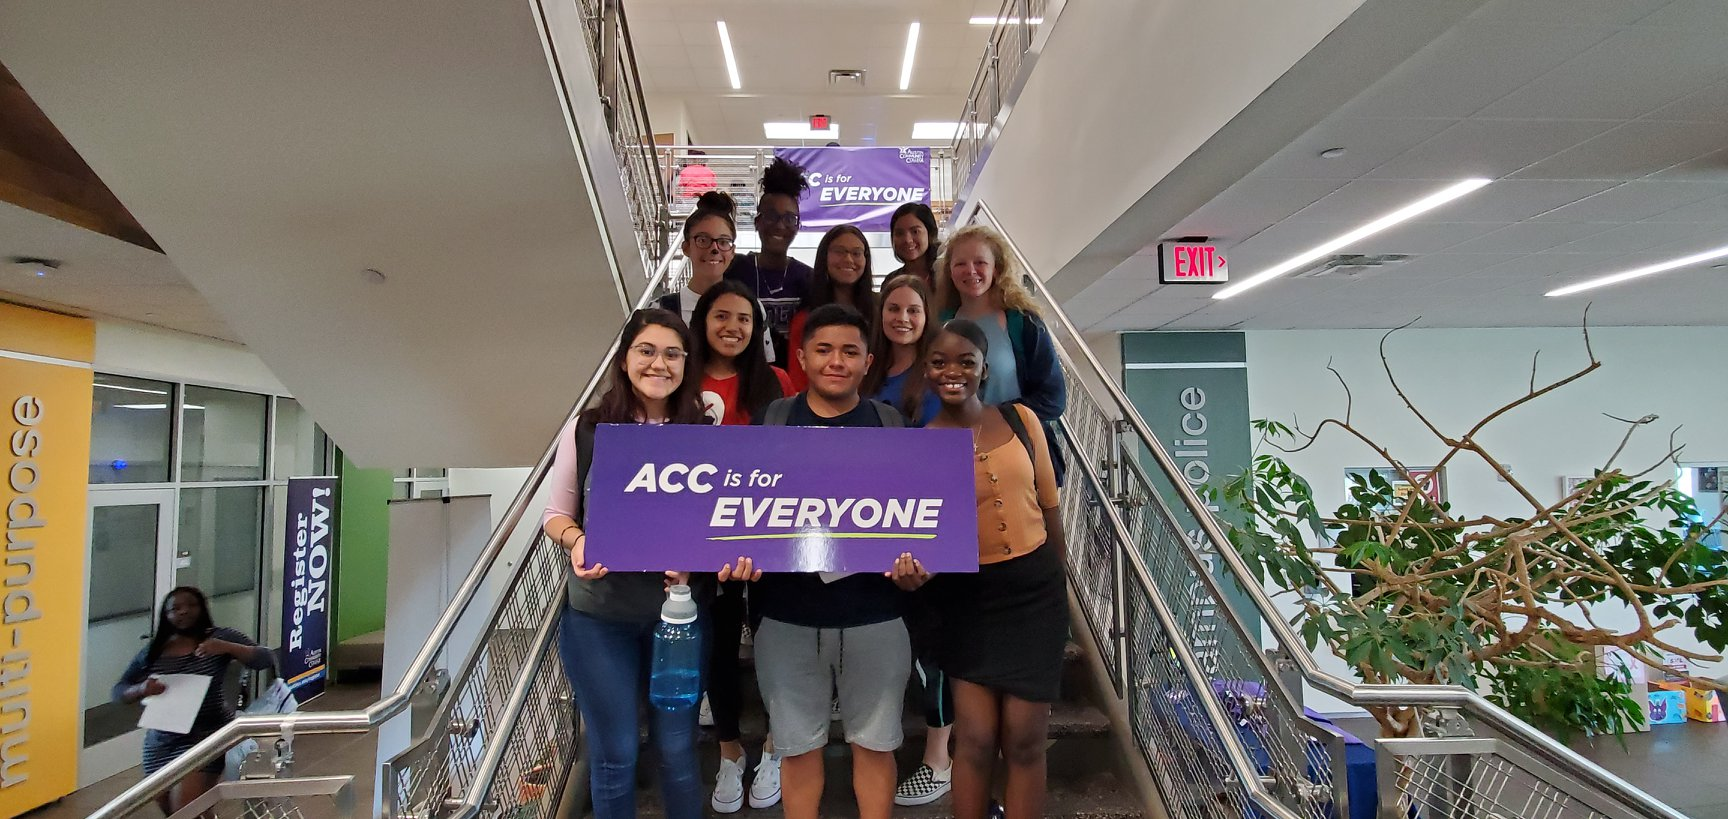 students holding acc is for everyone sign